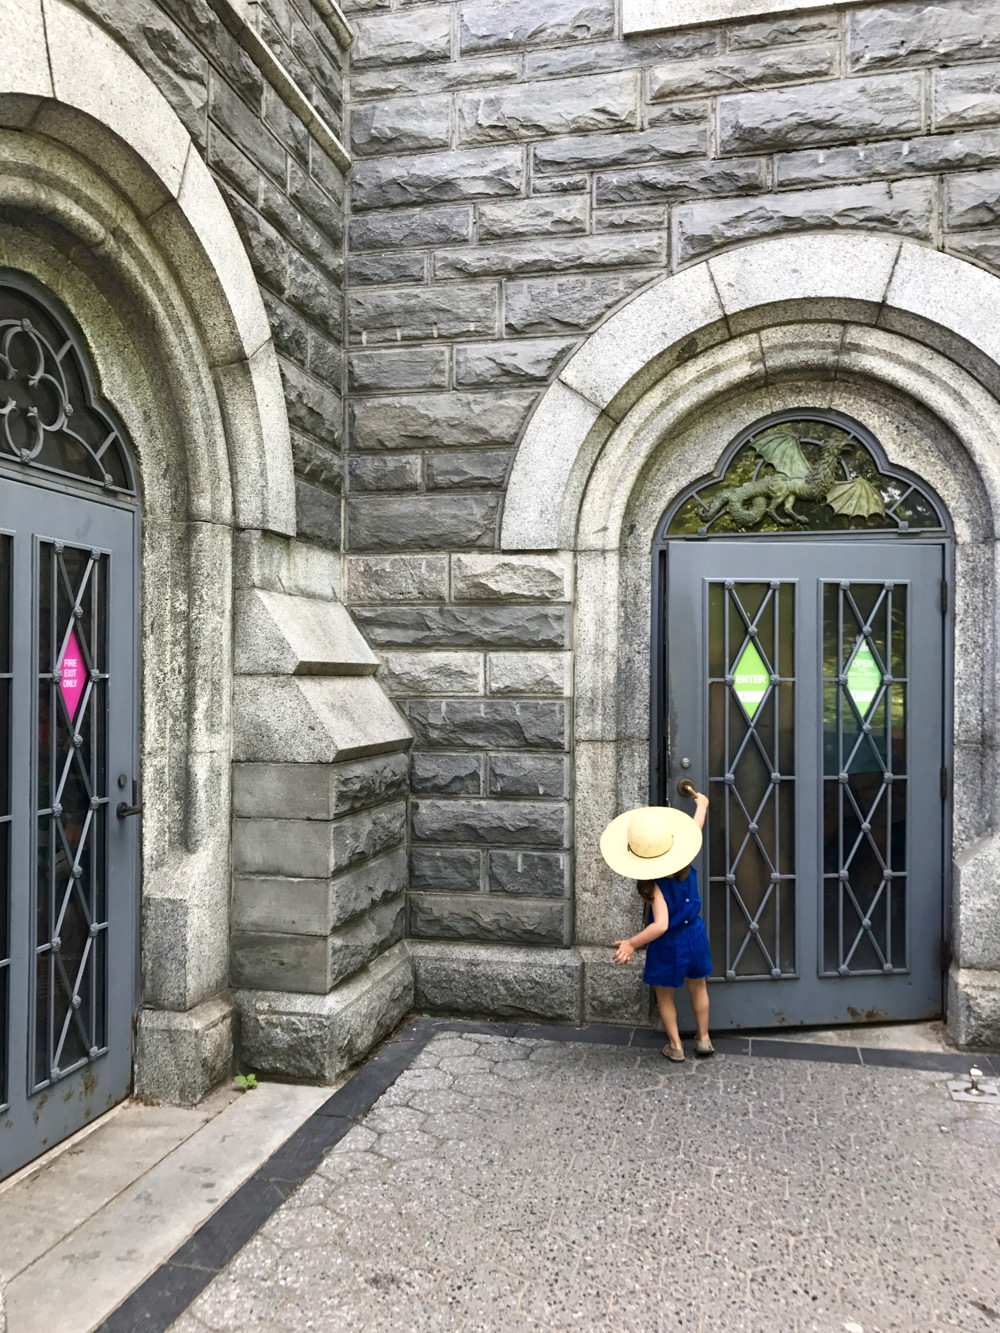 Opening the door to Belvedere Castle